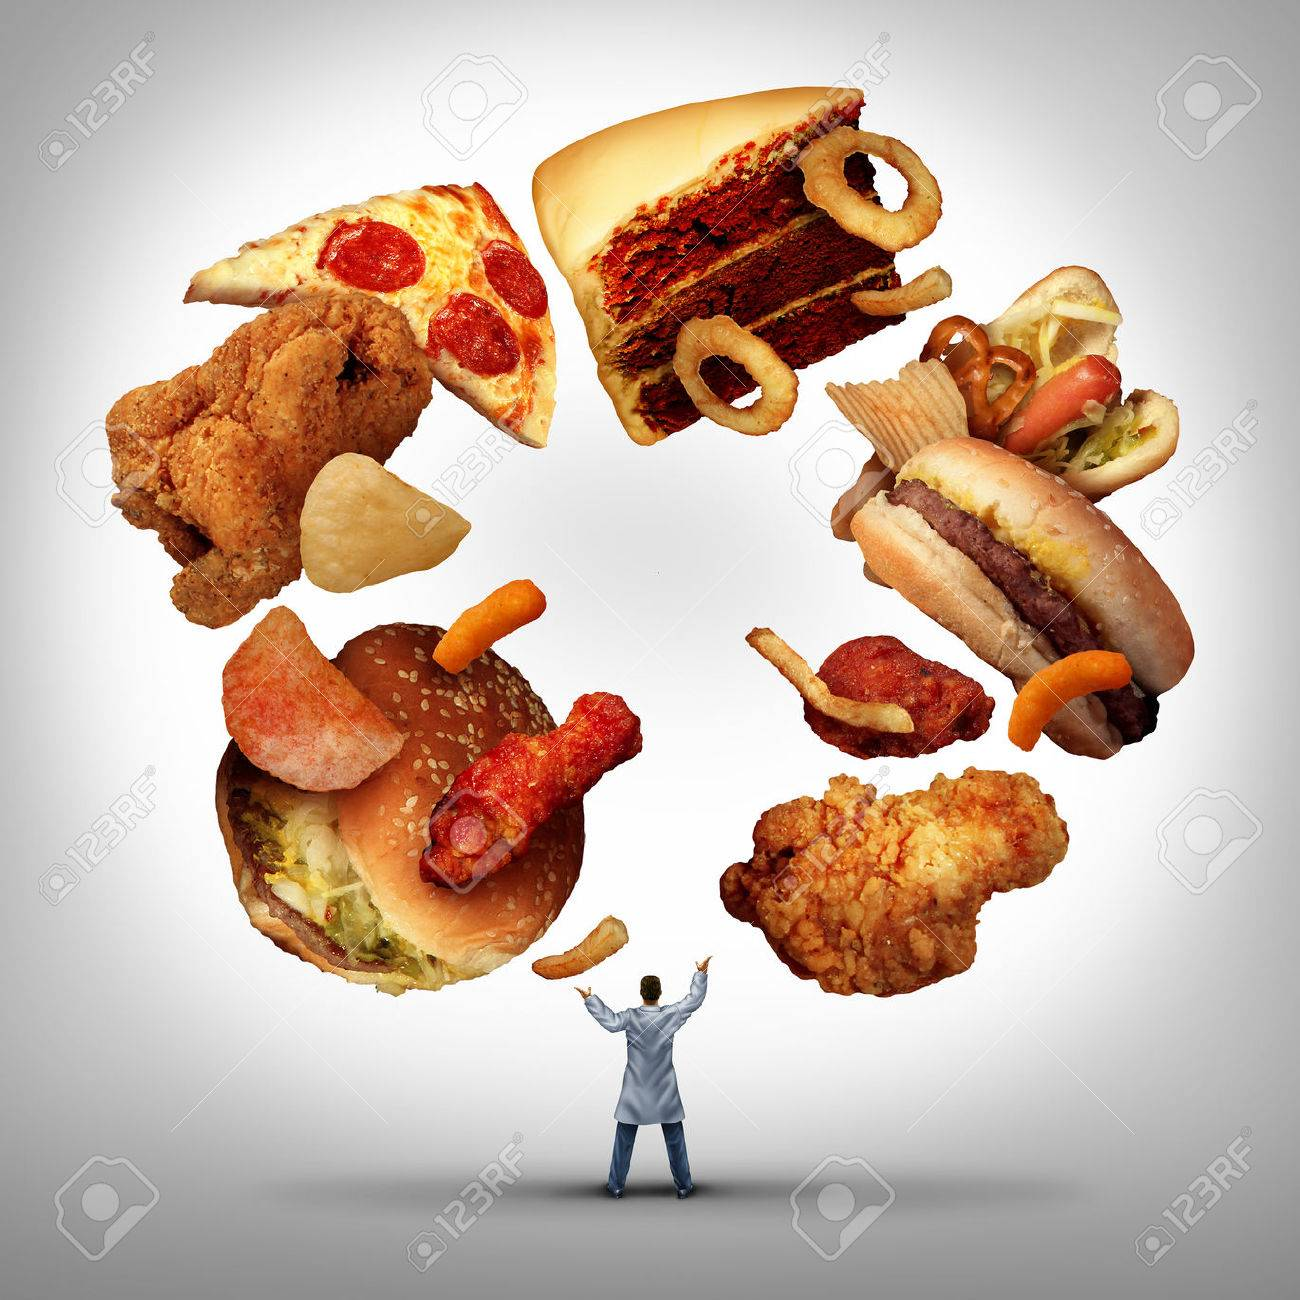 Nutritionist doctor or dietician and dietitian professional unhealthy food concept as a medical physician juggling low nutritional value generic fatty snacks as a nutritionist eating habit advice. - 54533173